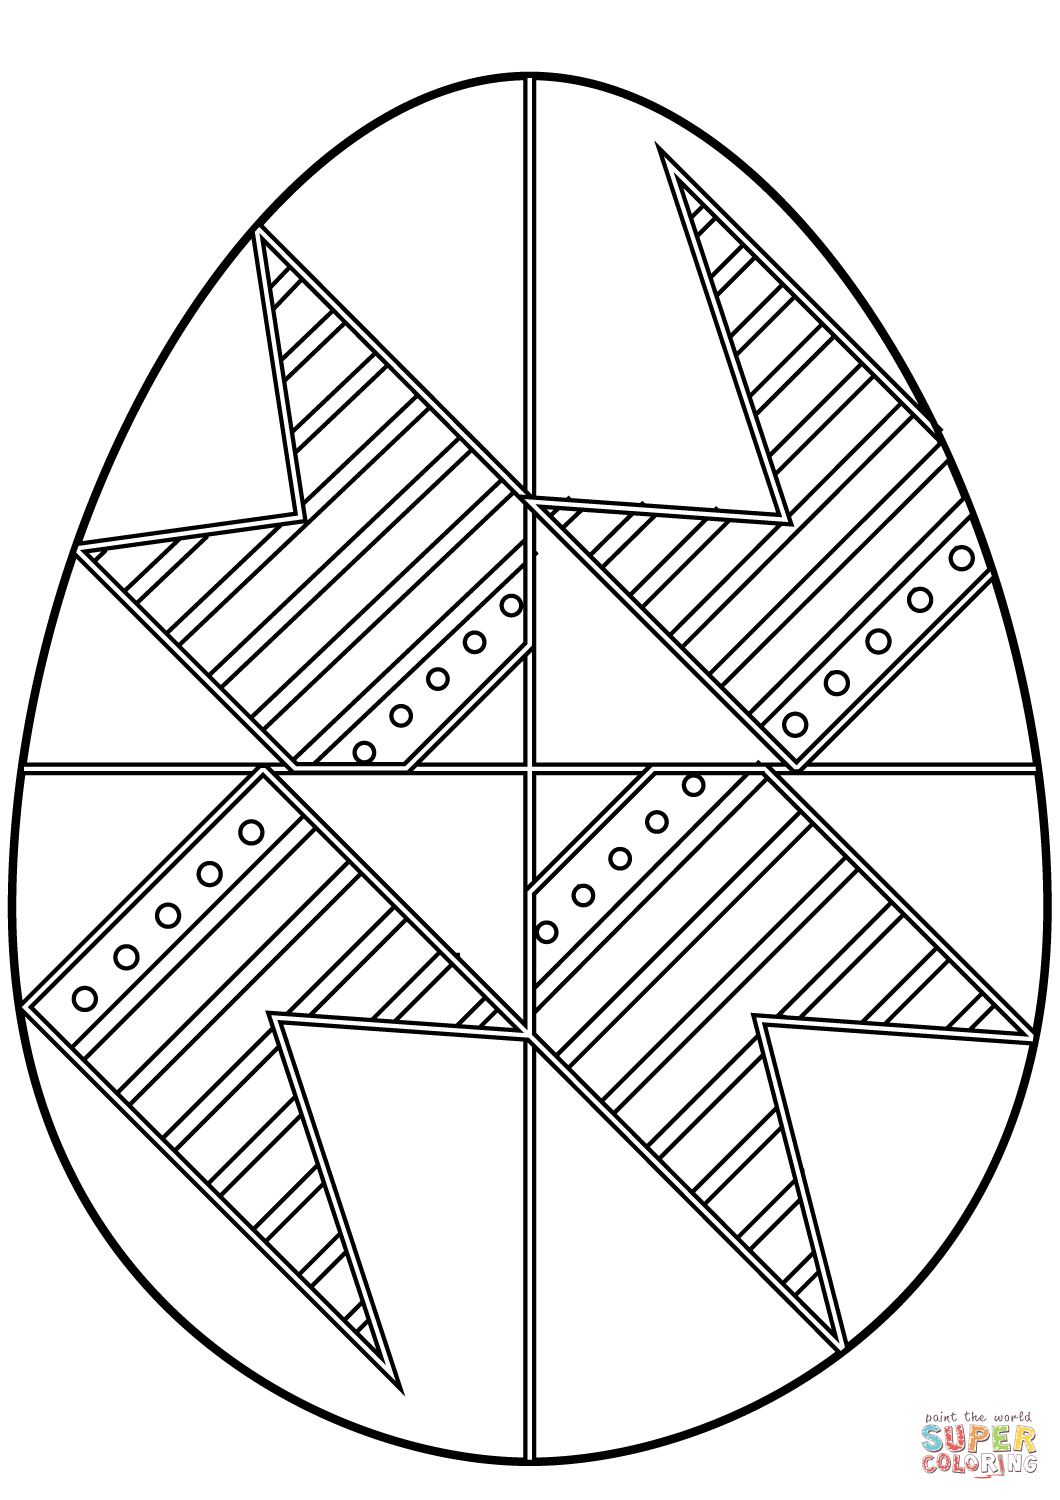 coloring pages of easter eggs top 25 free printable easter egg coloring pages online coloring easter eggs pages of